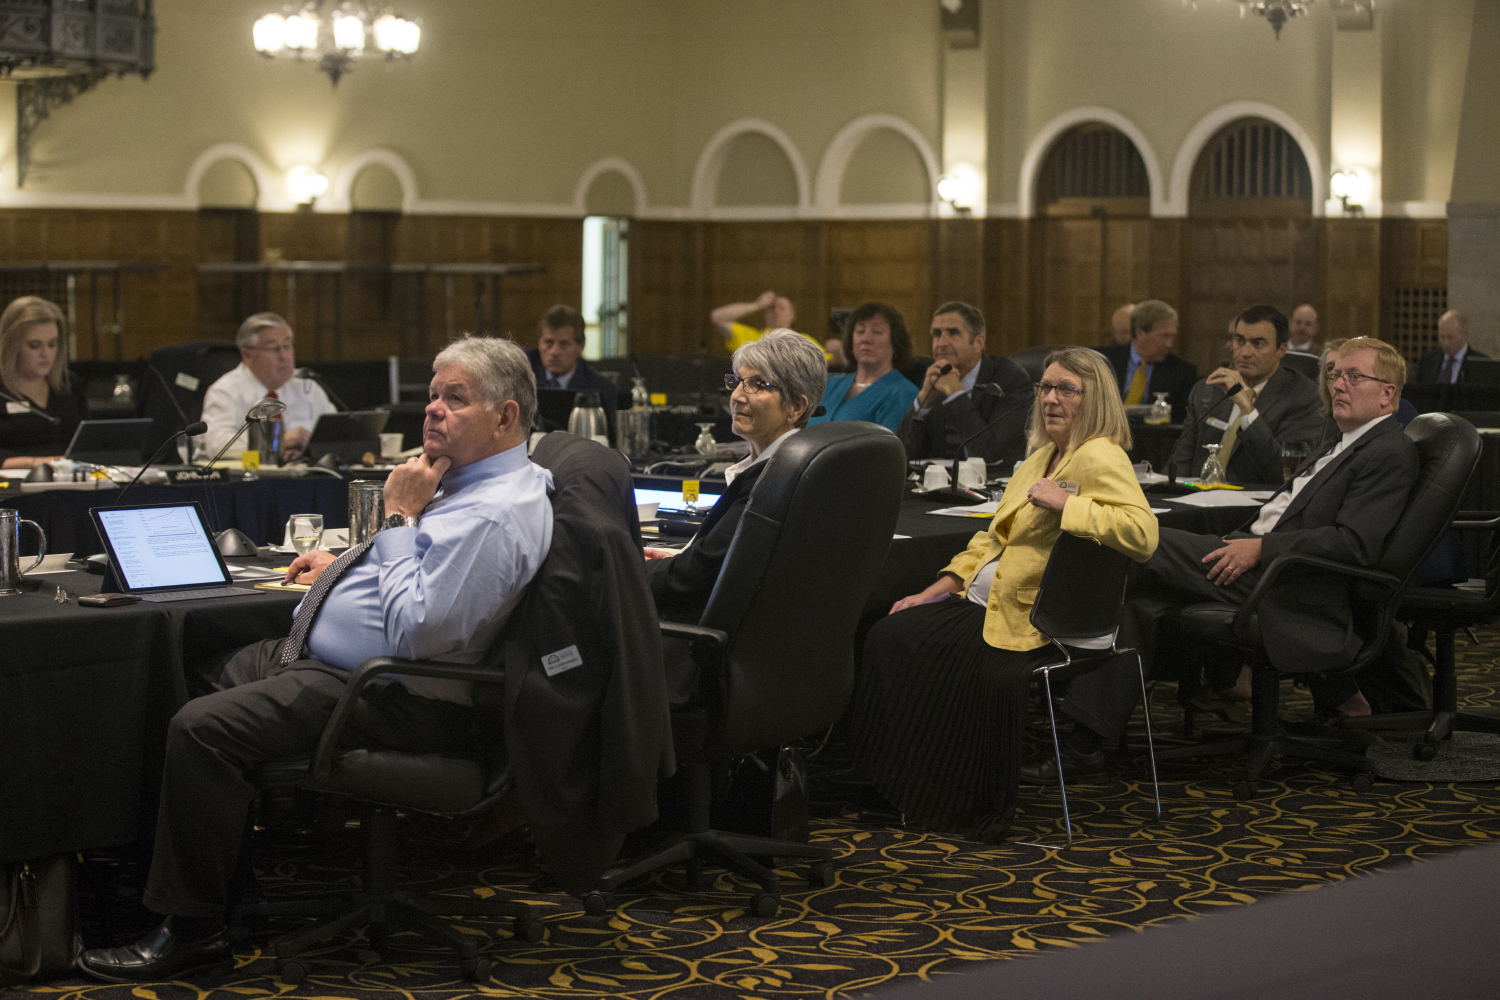 Board members listen during the Board of Regents meeting on September 12, 2018 in the IMU Main Lounge. Regents members discussed remodeling various buildings and sights across various Iowa campuses. (Katie Goodale/ The Daily Iowan)